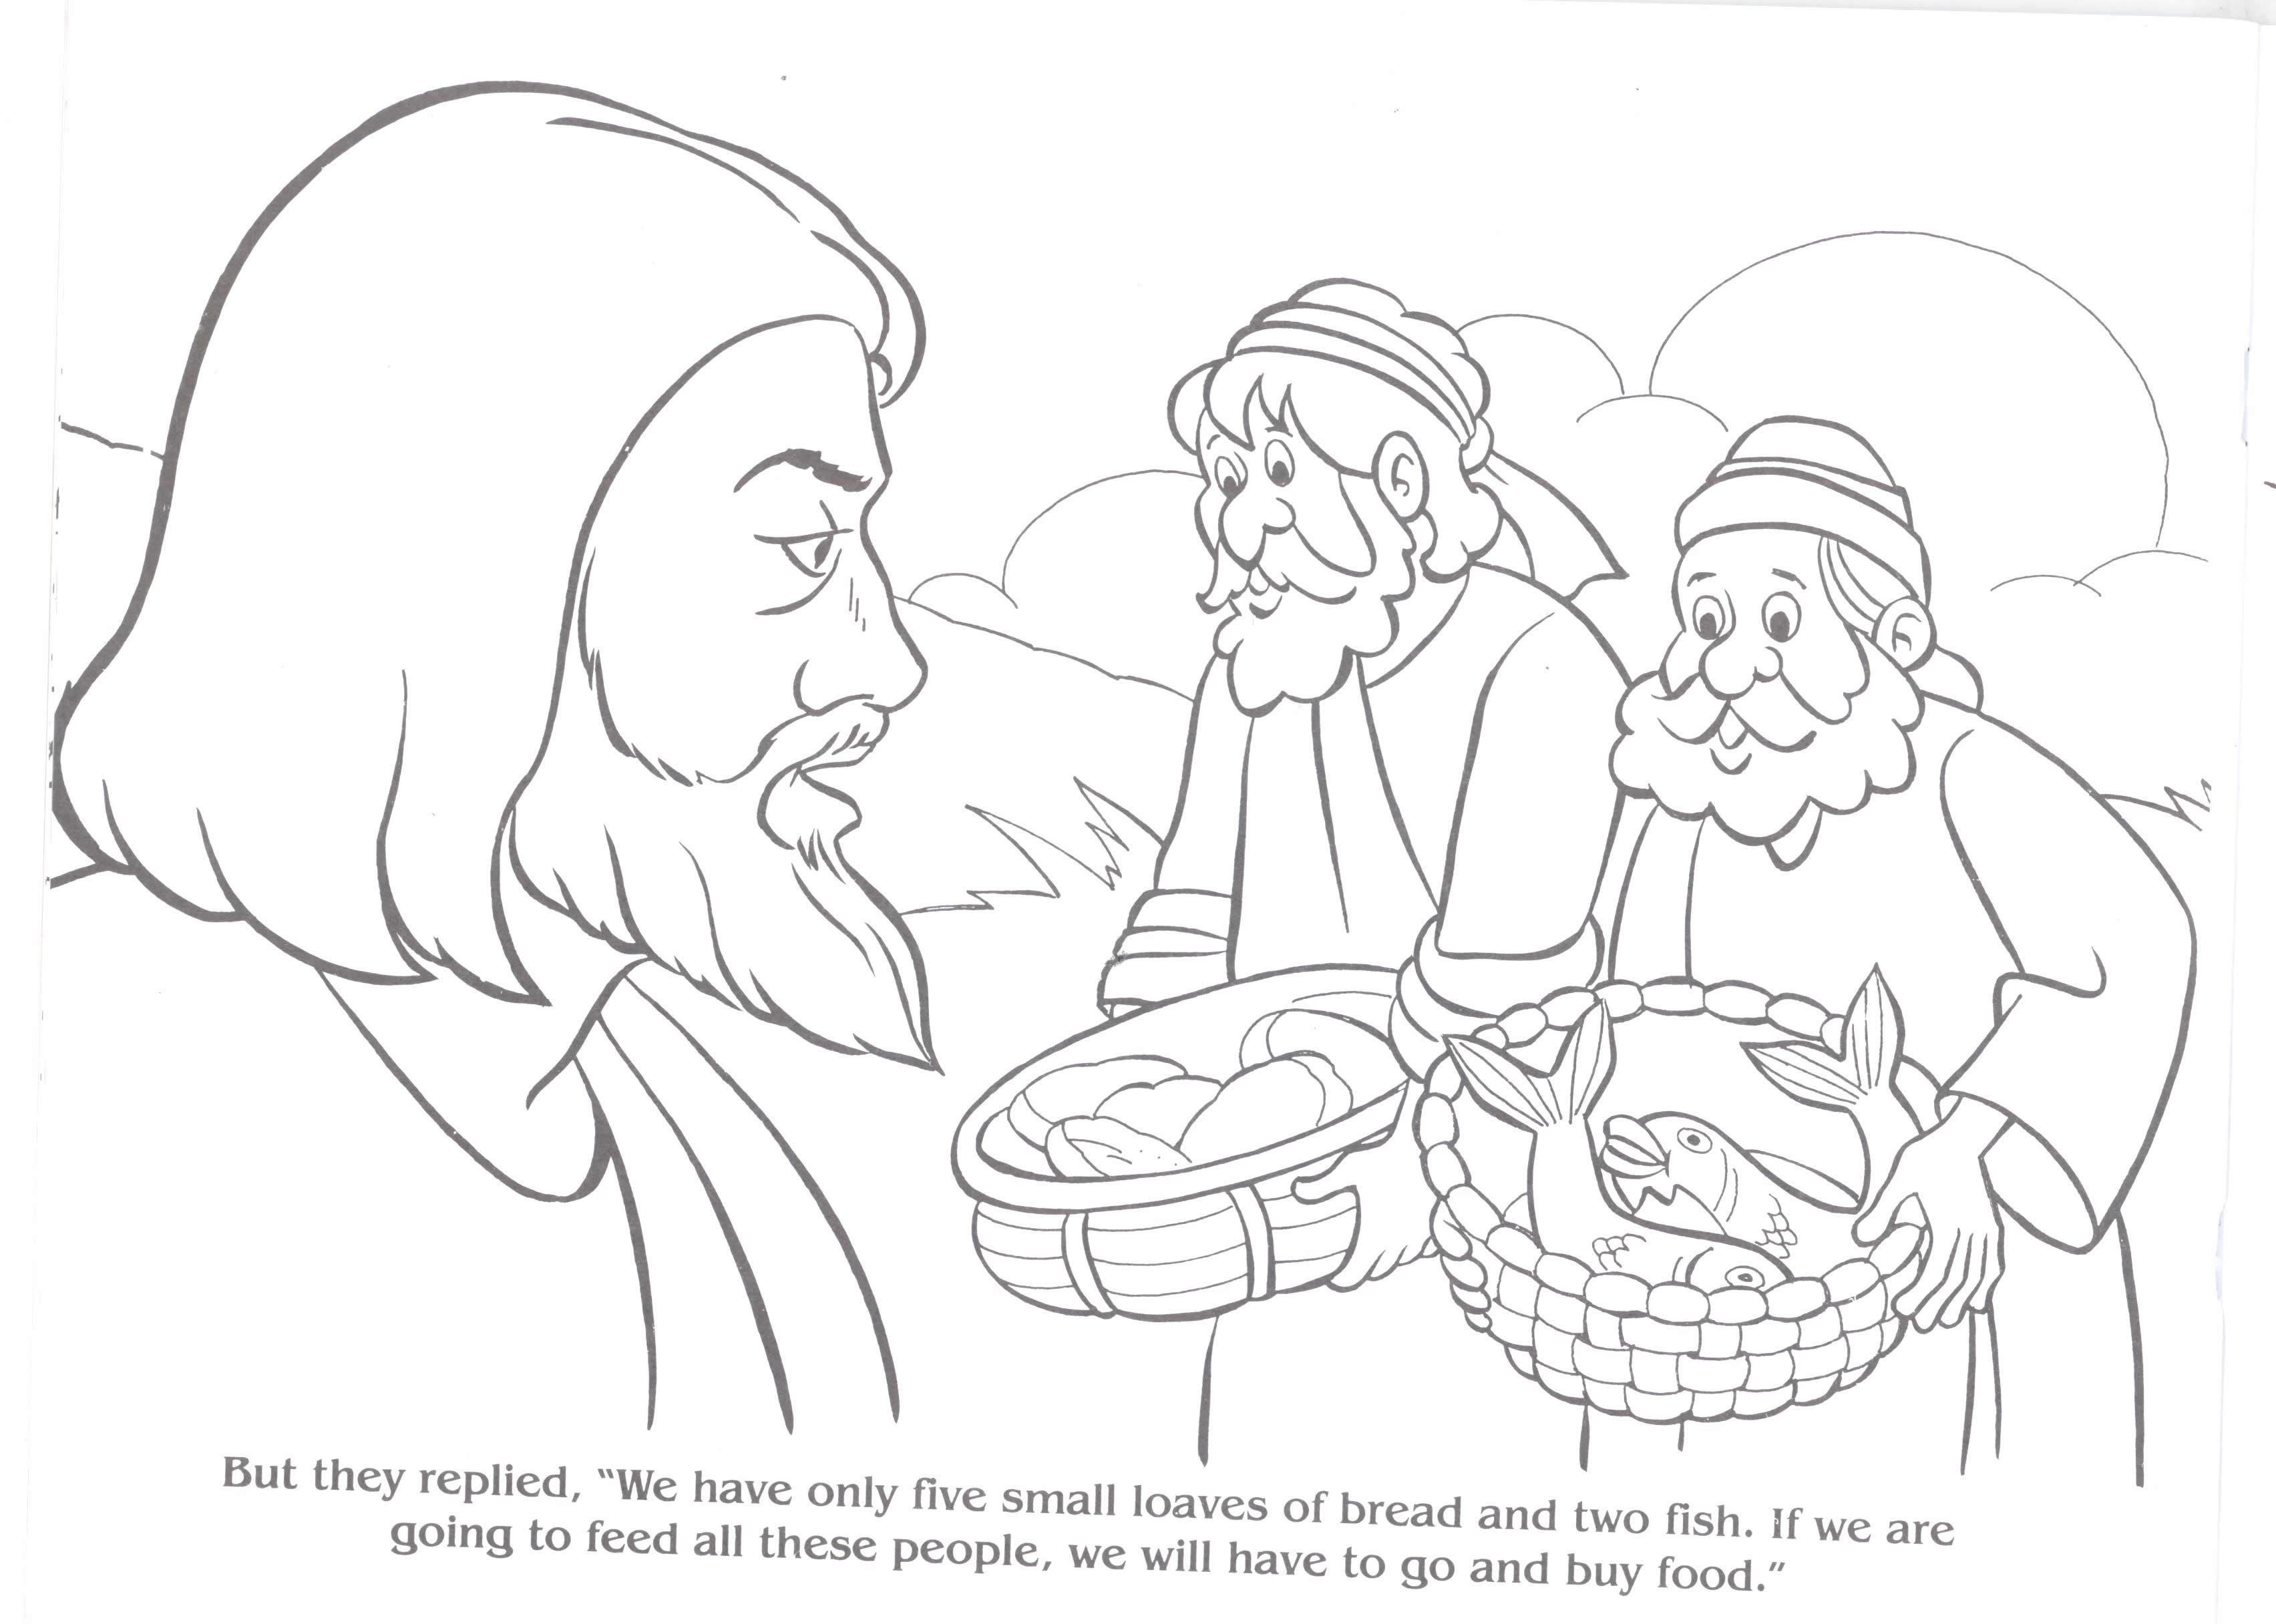 jesus feeds 5000 coloring page - coloring pages jesus feeds the 5000